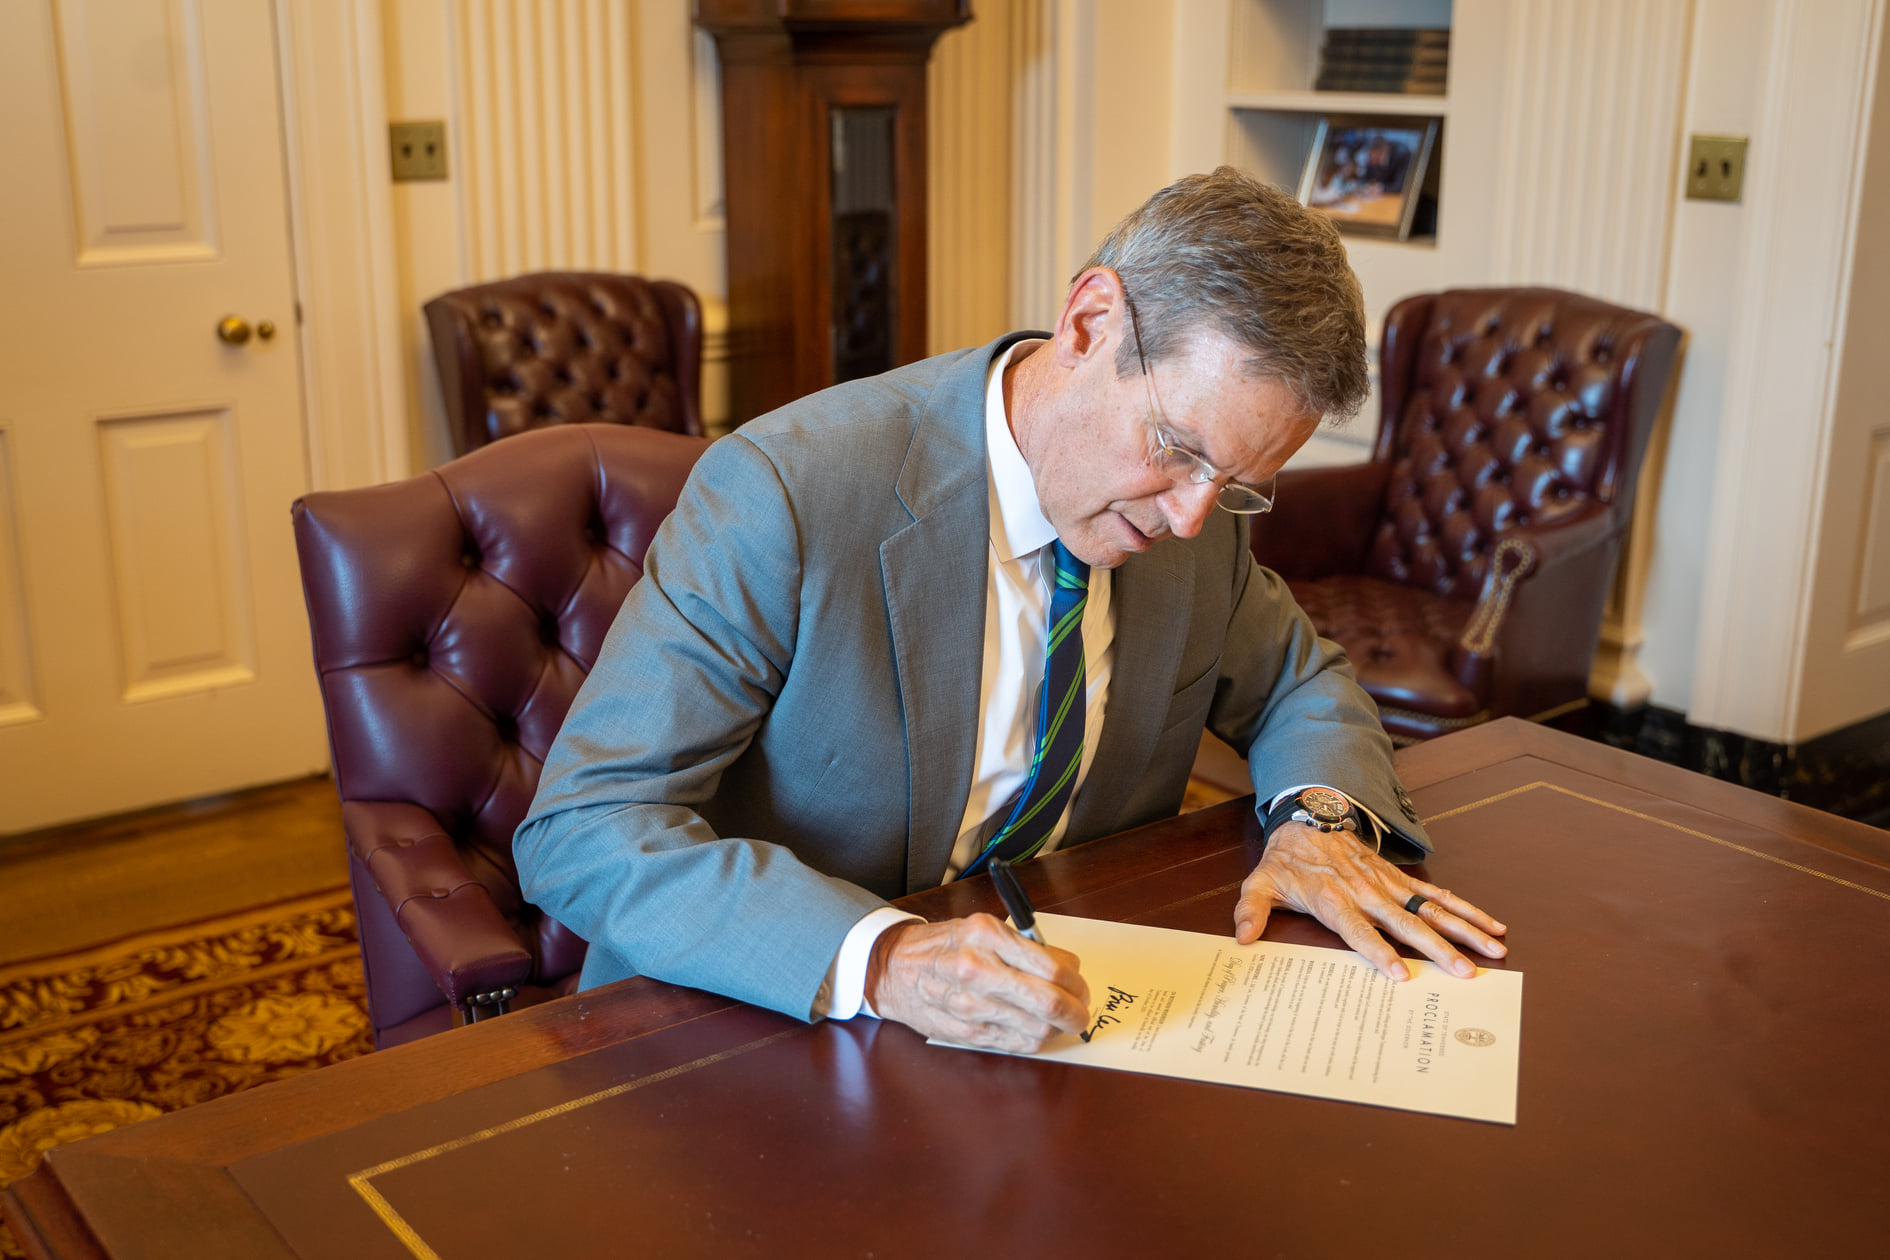 Tennessee Day of Prayer and Fasting - Gov. Bill Lee declared, Thursday, October 15, 2020 to be a day of Prayer and Fasting. #Prayer #Fasting #GovBillLee #Tennessee